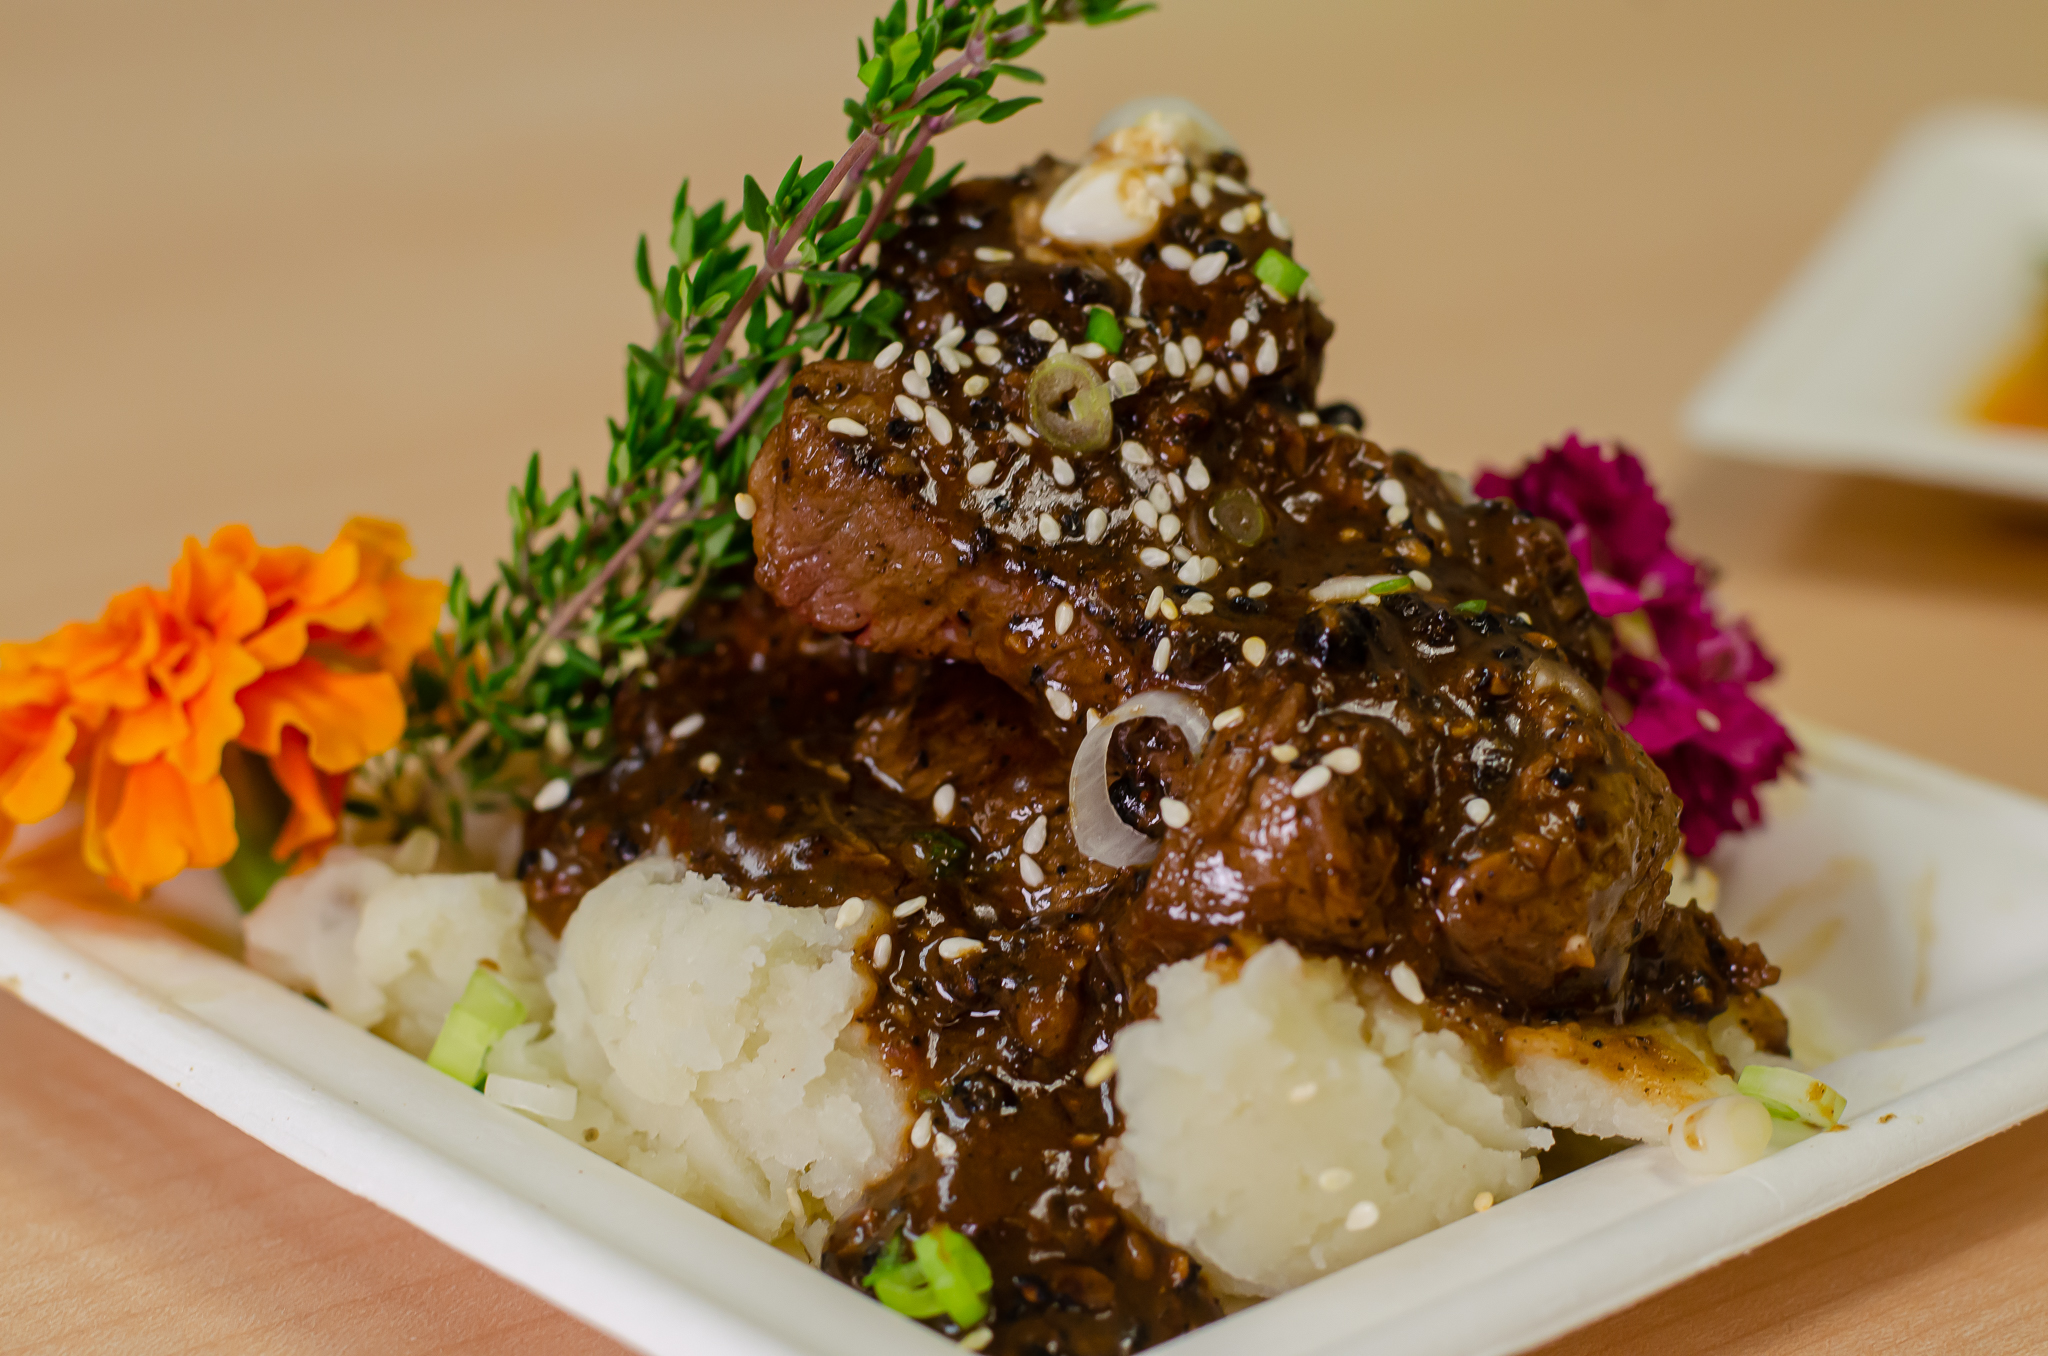 Peppercorn beef tips from Chef Anthony Dalupan in Windsor, Ontario.